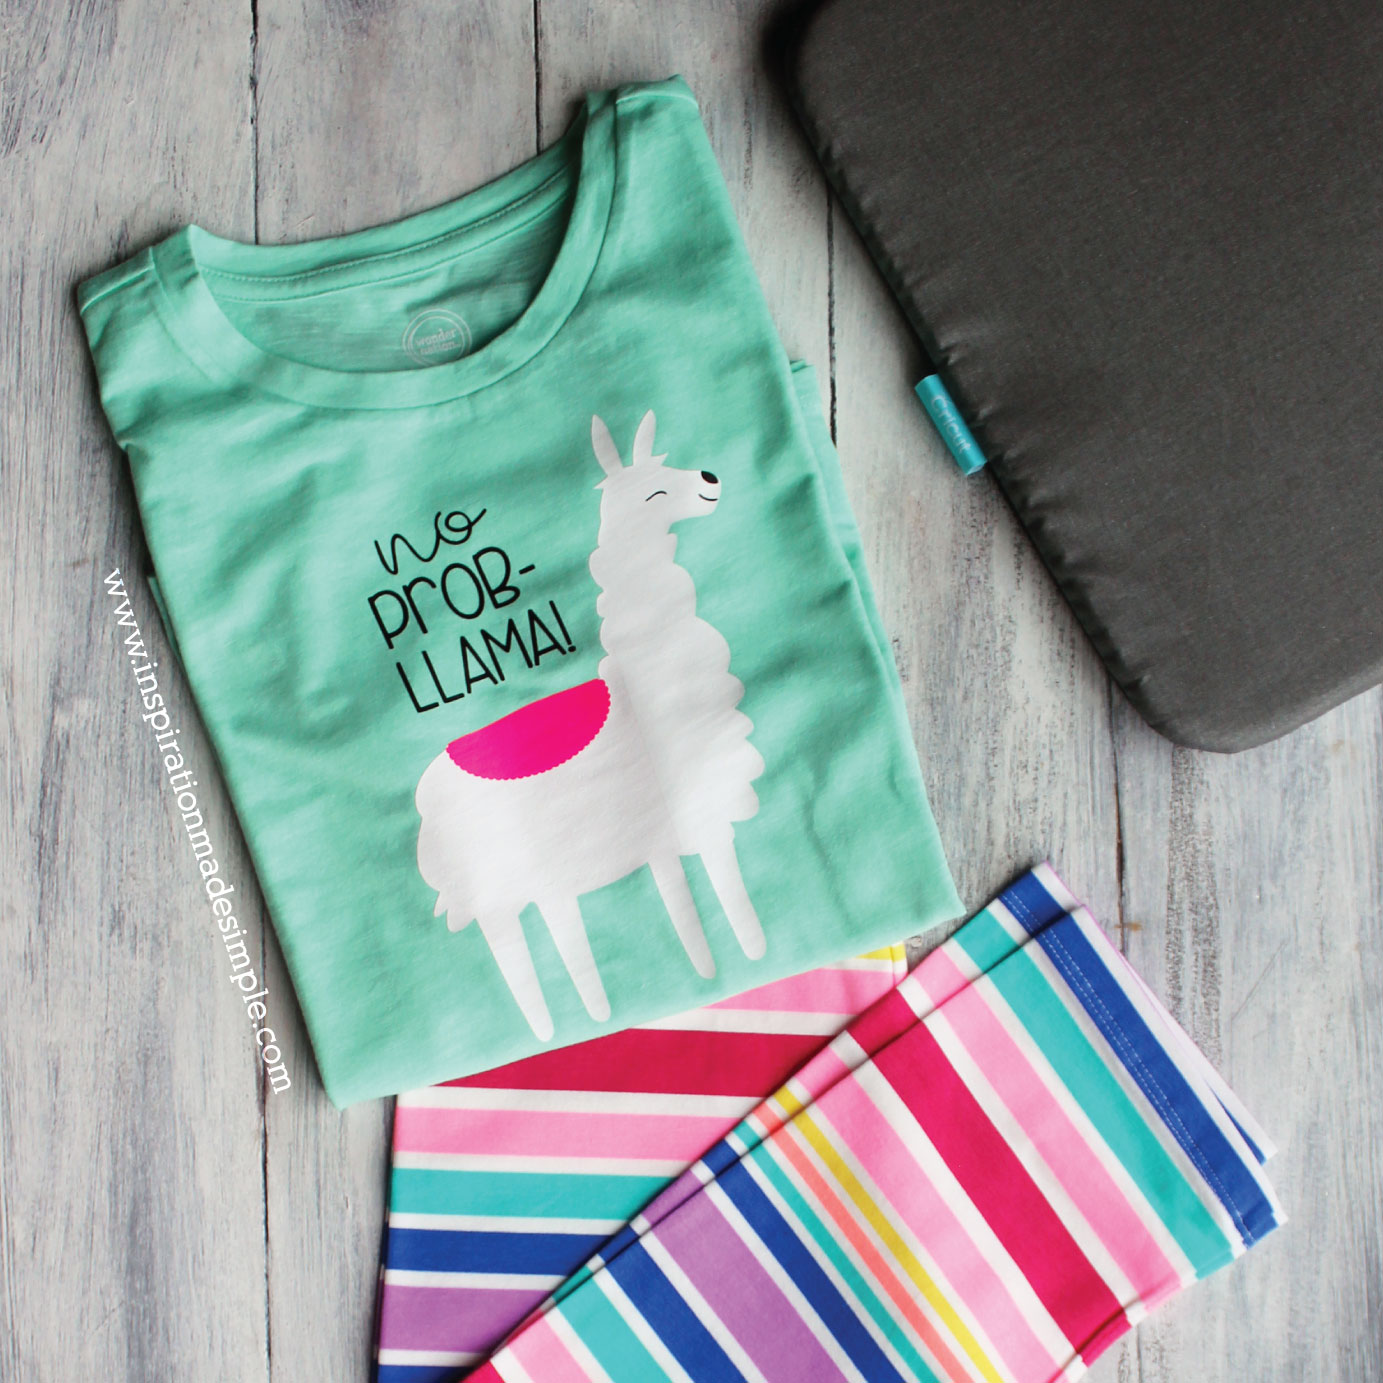 DIY No Prob-llama Shirt & SVG Cut File